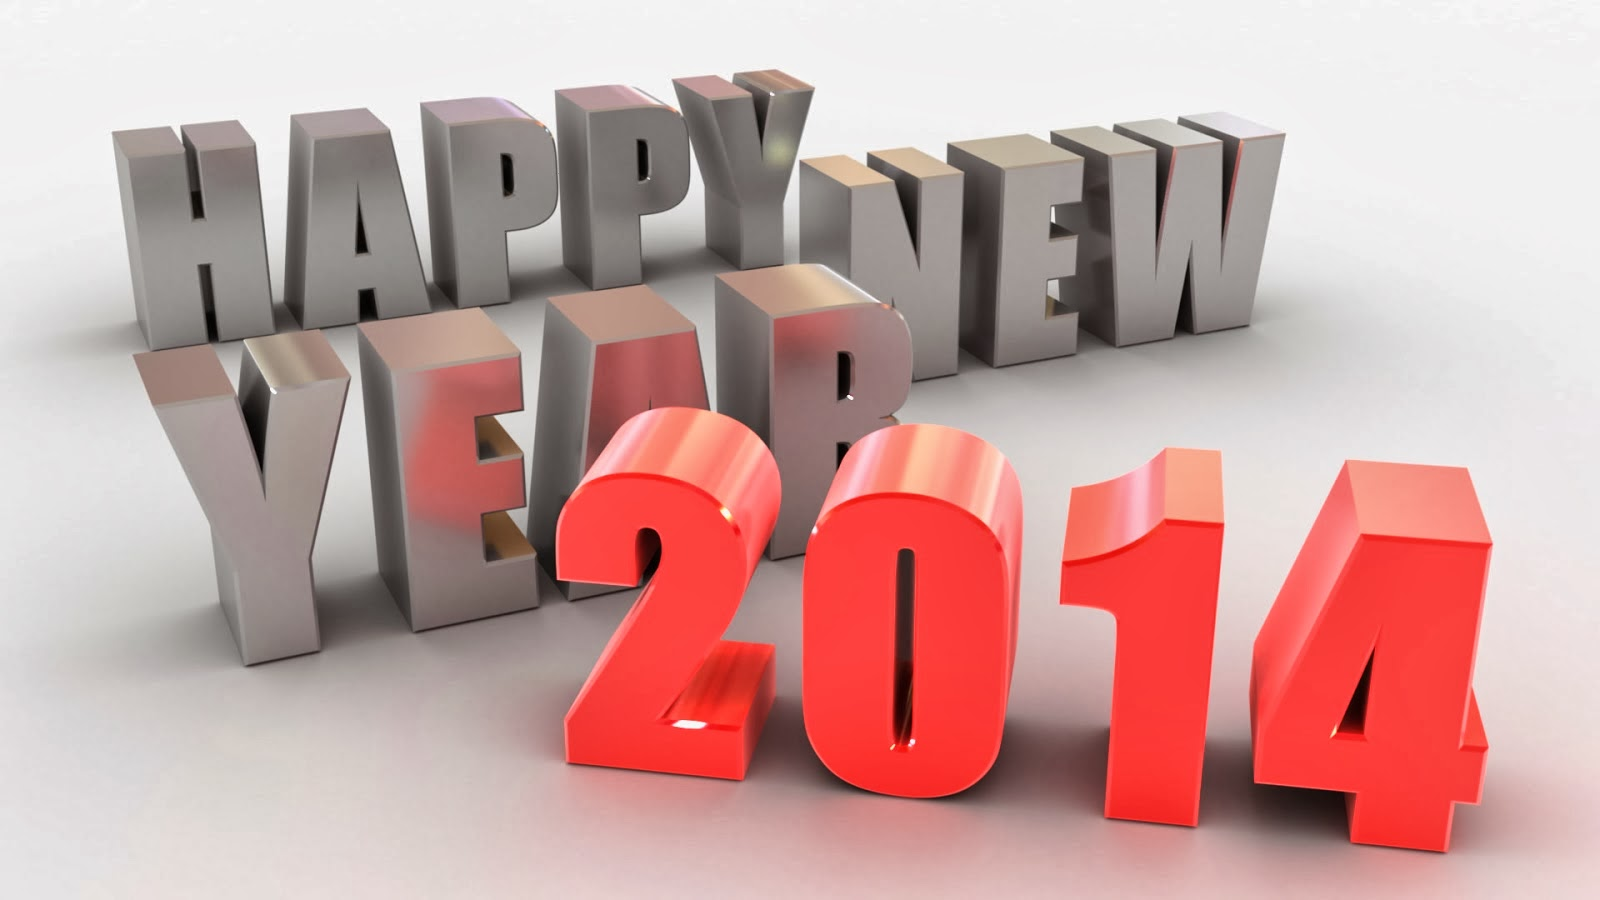 Animated Happy New Year 2014 Greetings Hd Wallpaper Free Download